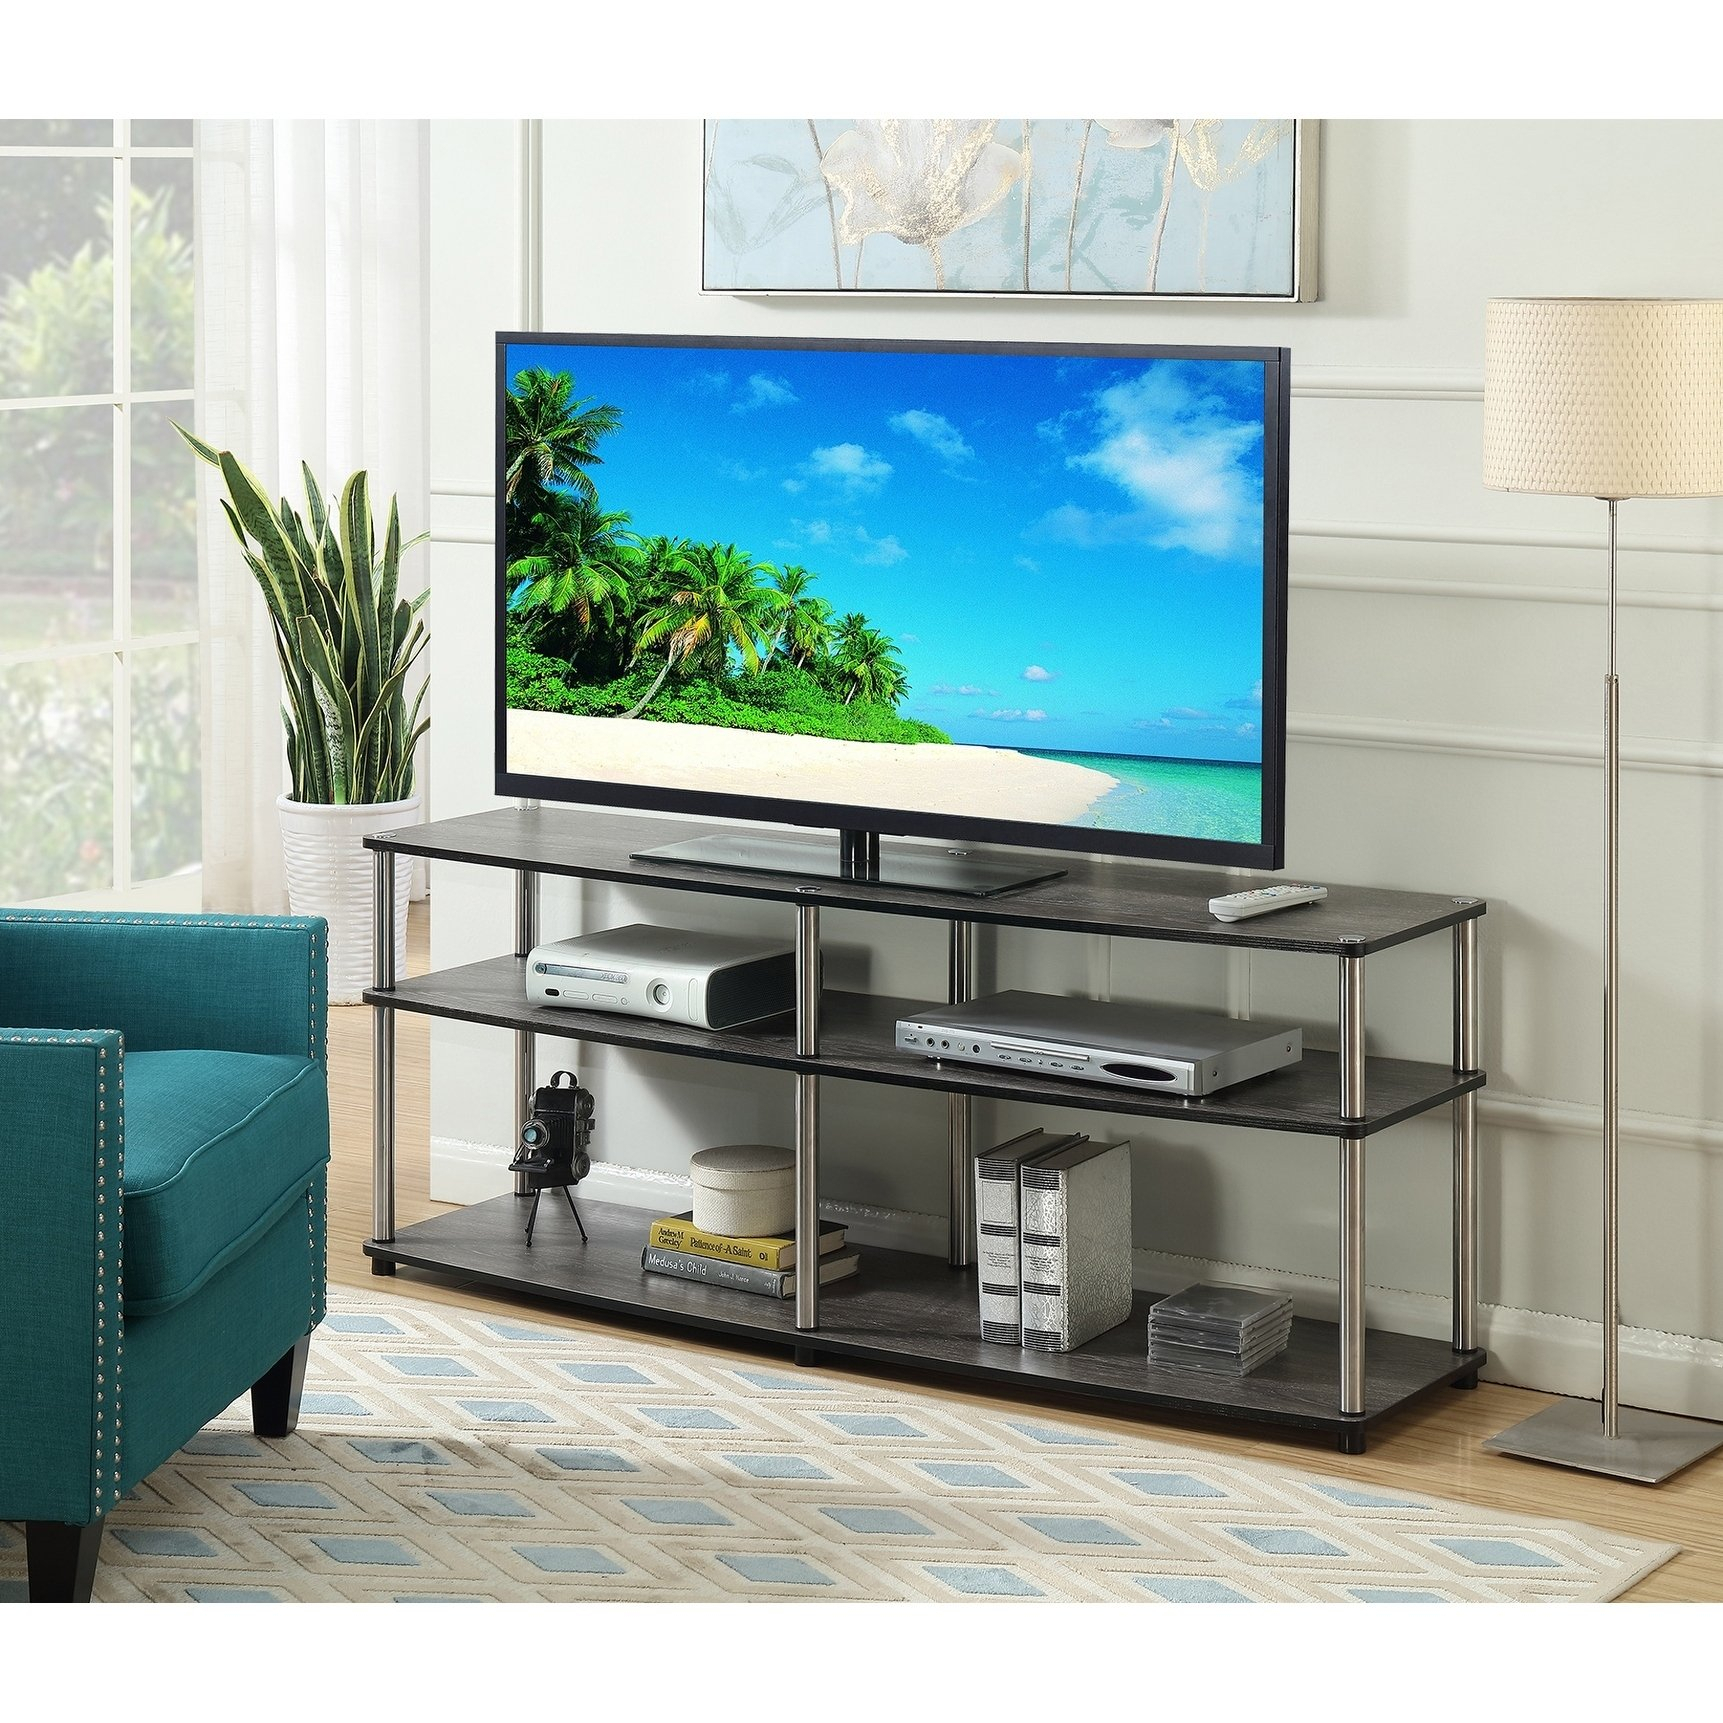 Buy Grey, 42 - 60 Inches Tv Stands & Entertainment Centers Online At pertaining to Rowan 64 Inch Tv Stands (Image 8 of 30)